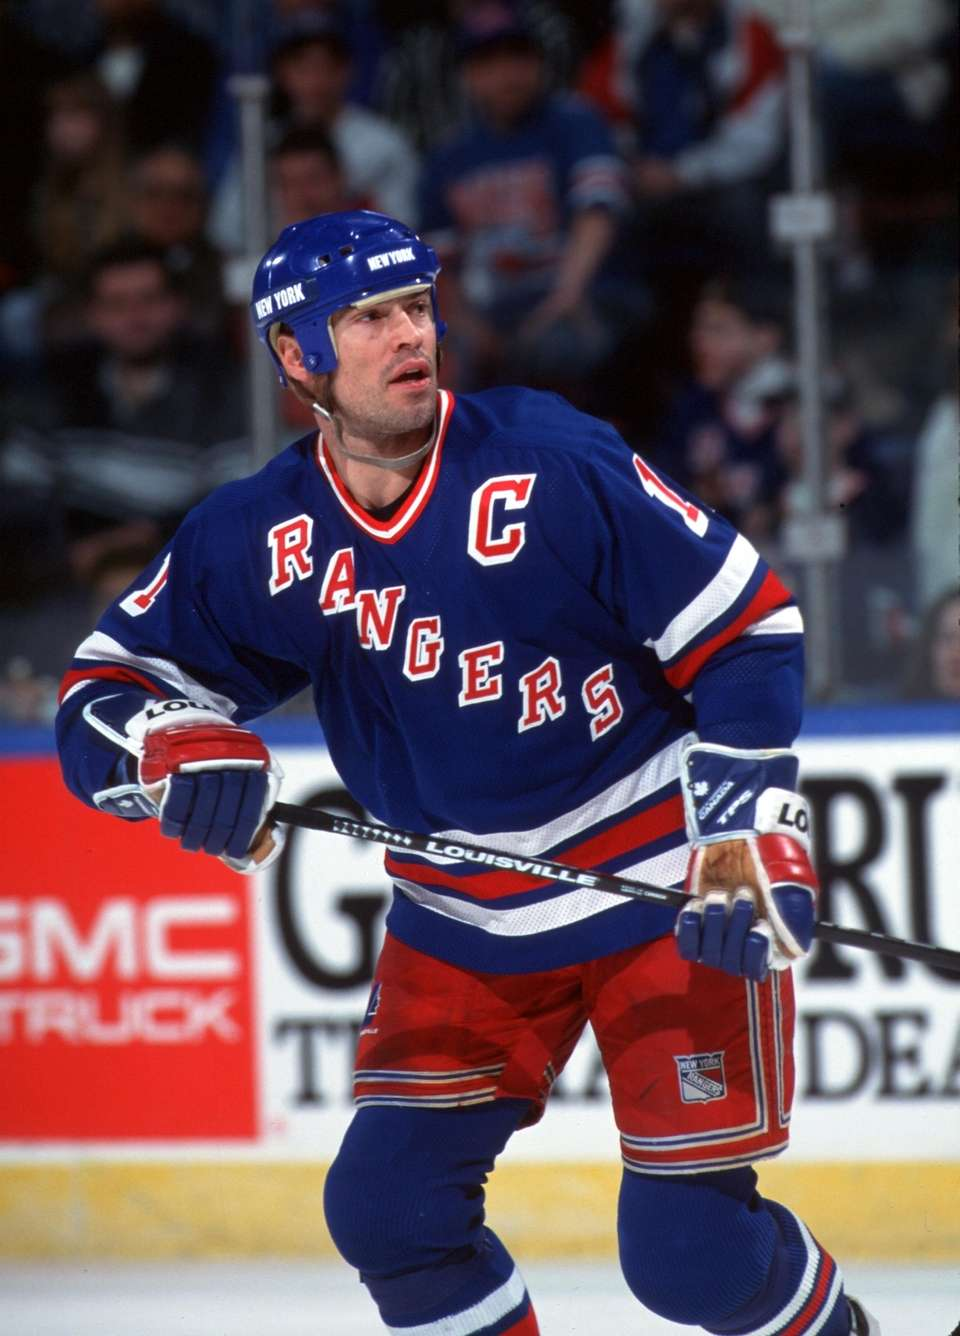 MARK MESSIER, Hockey After a three-season stint in